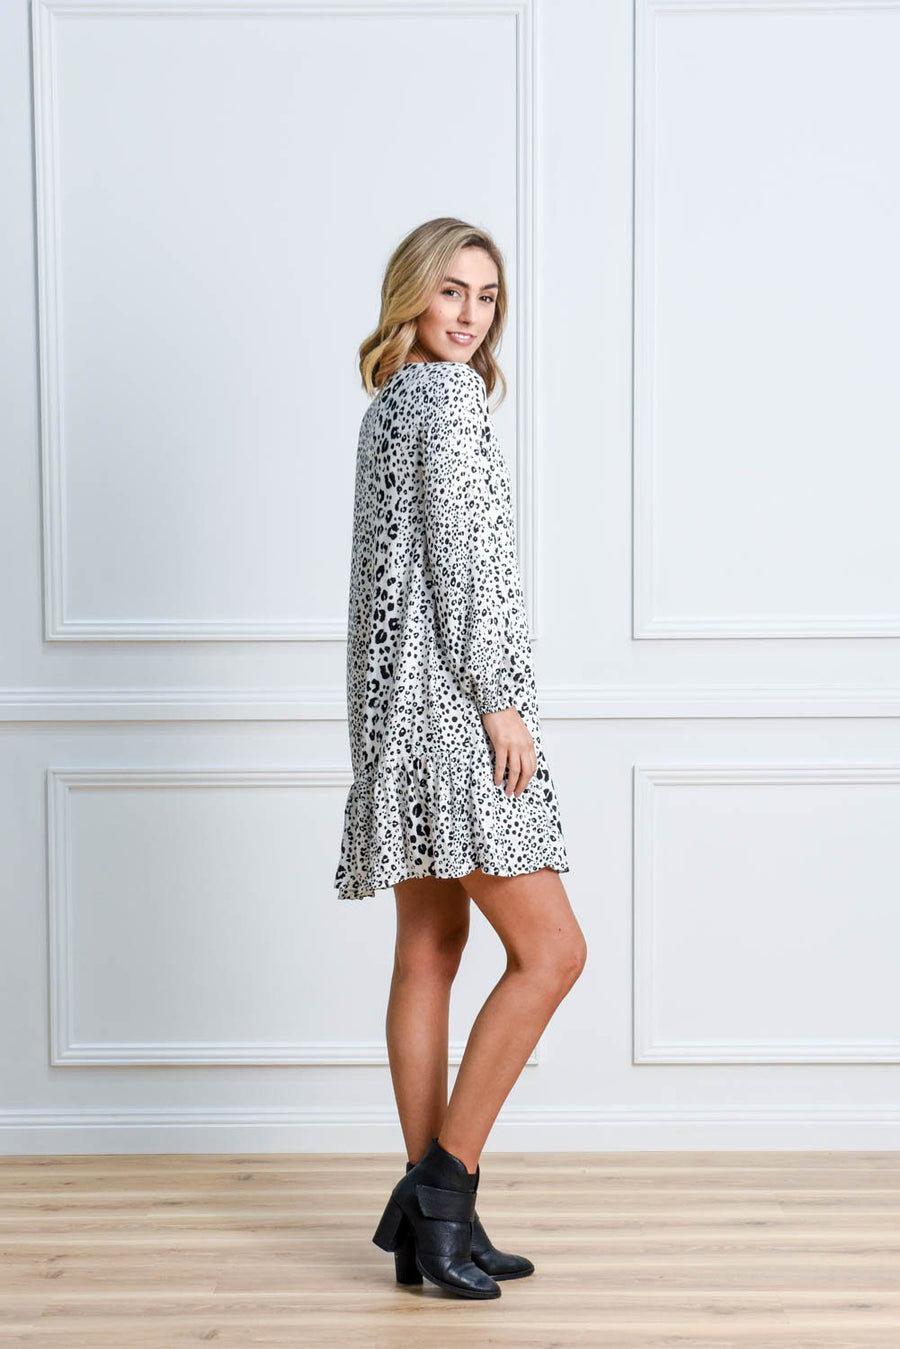 Kyree Button Dress | Monochrome Leopard Dress Gray.Label